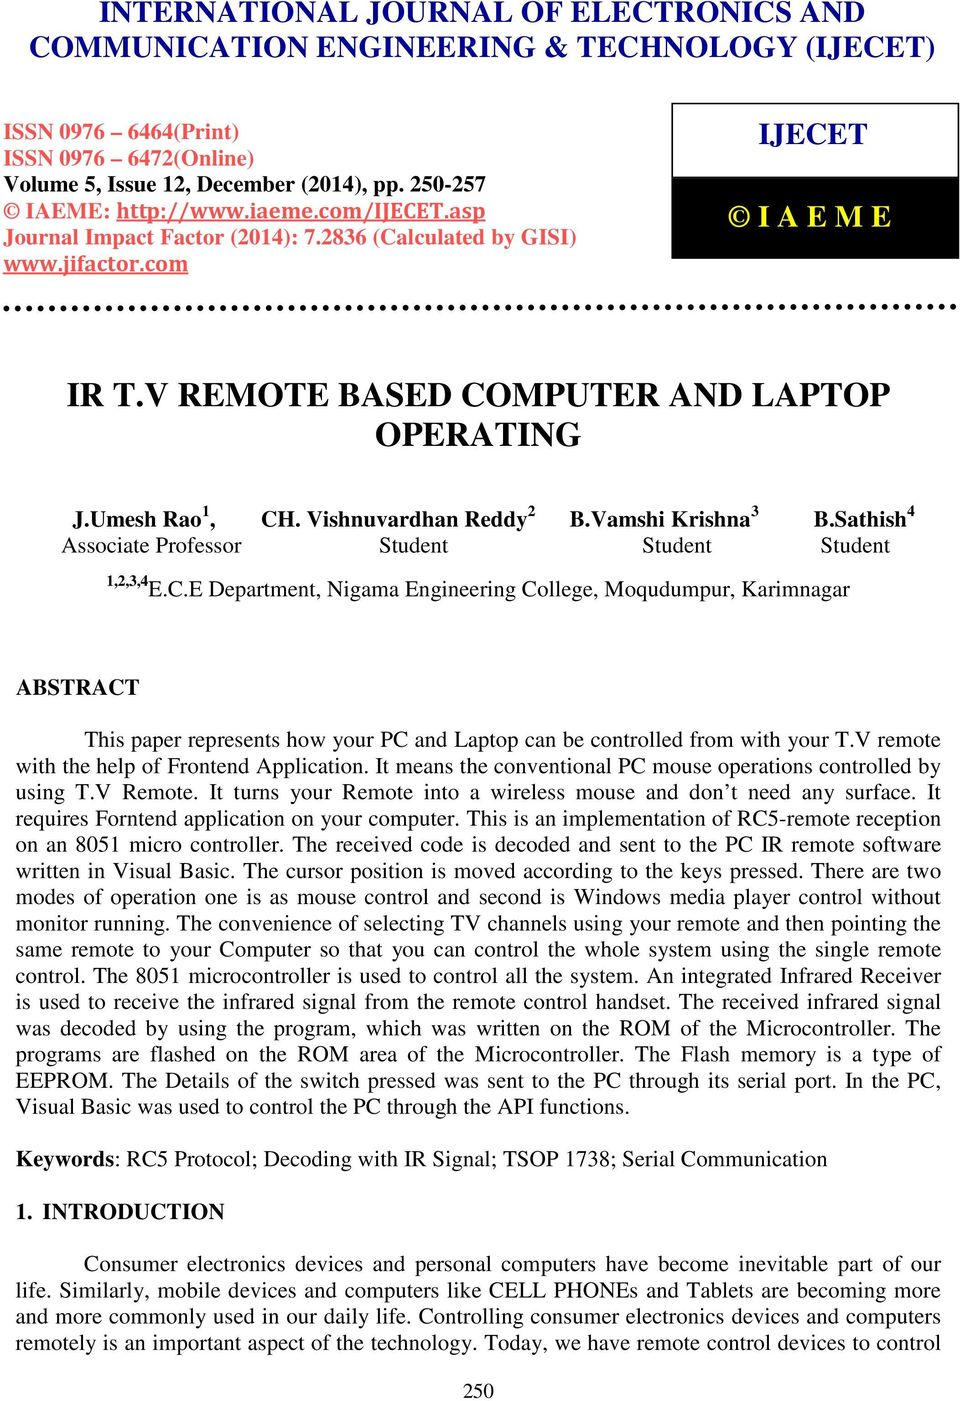 Ir Tv Remote Based Computer And Laptop Operating Pdf Universal Rc5 Rc6 Transceiver With Pic16f628 Com Ijecet I A E M Jumesh Rao 1